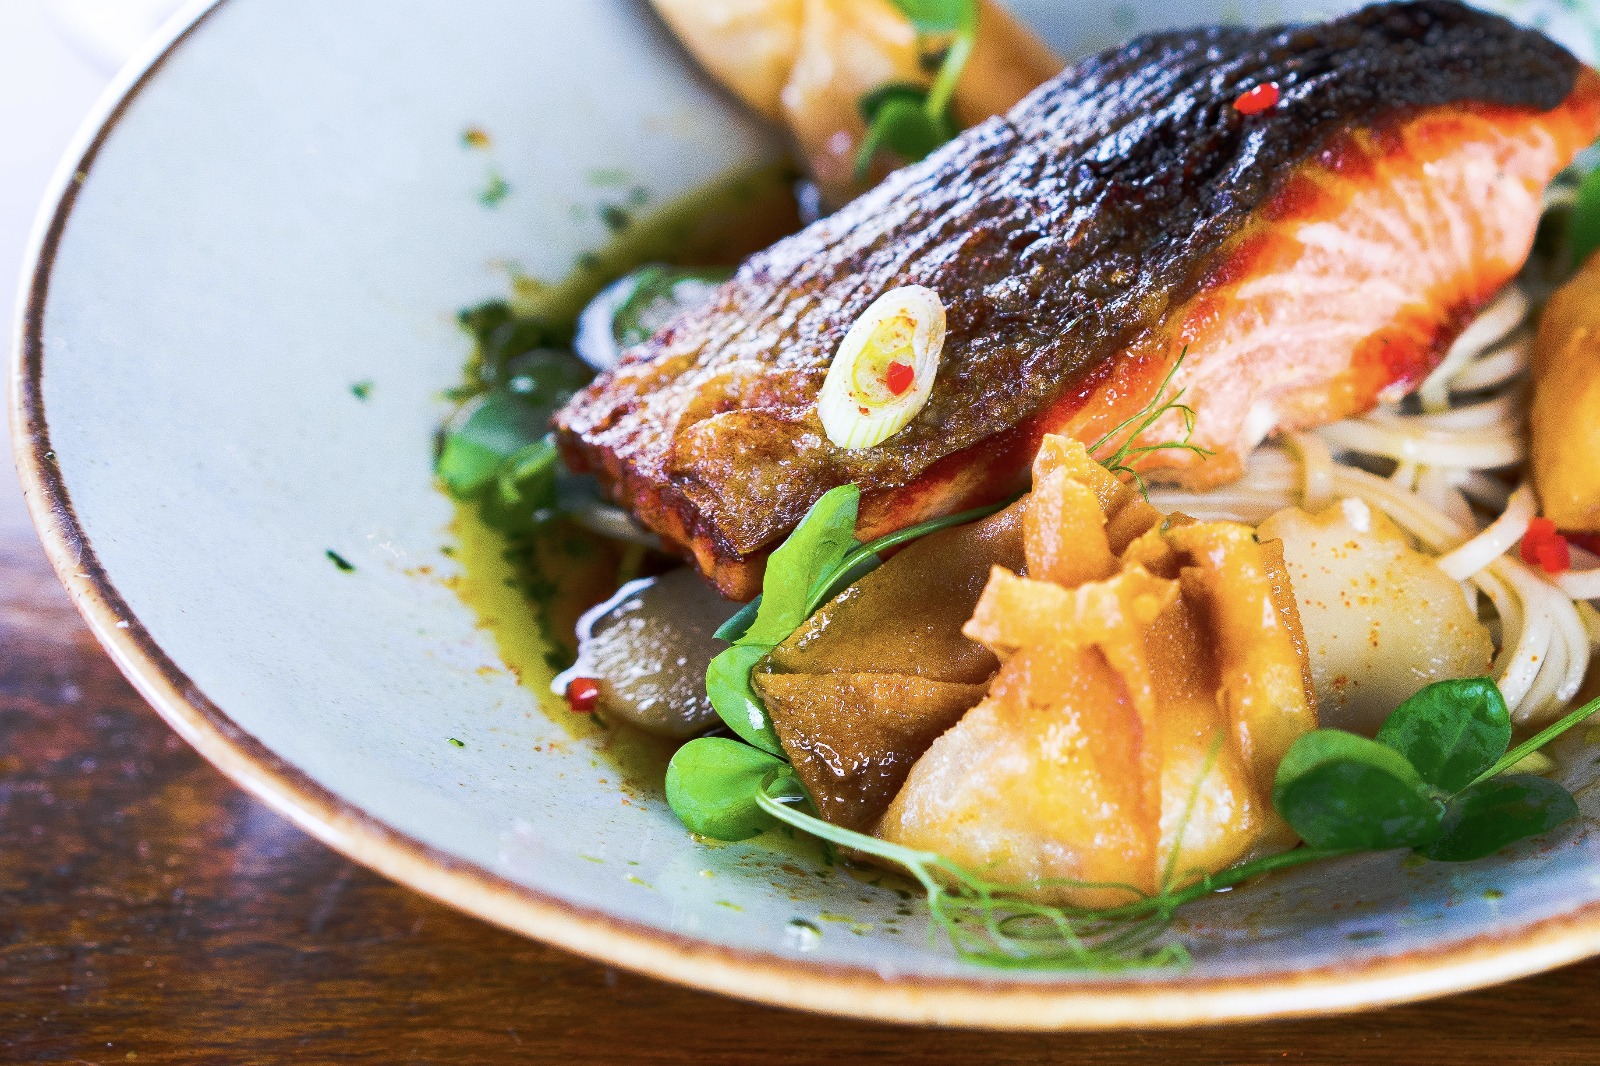 salmon and noodles.JPG